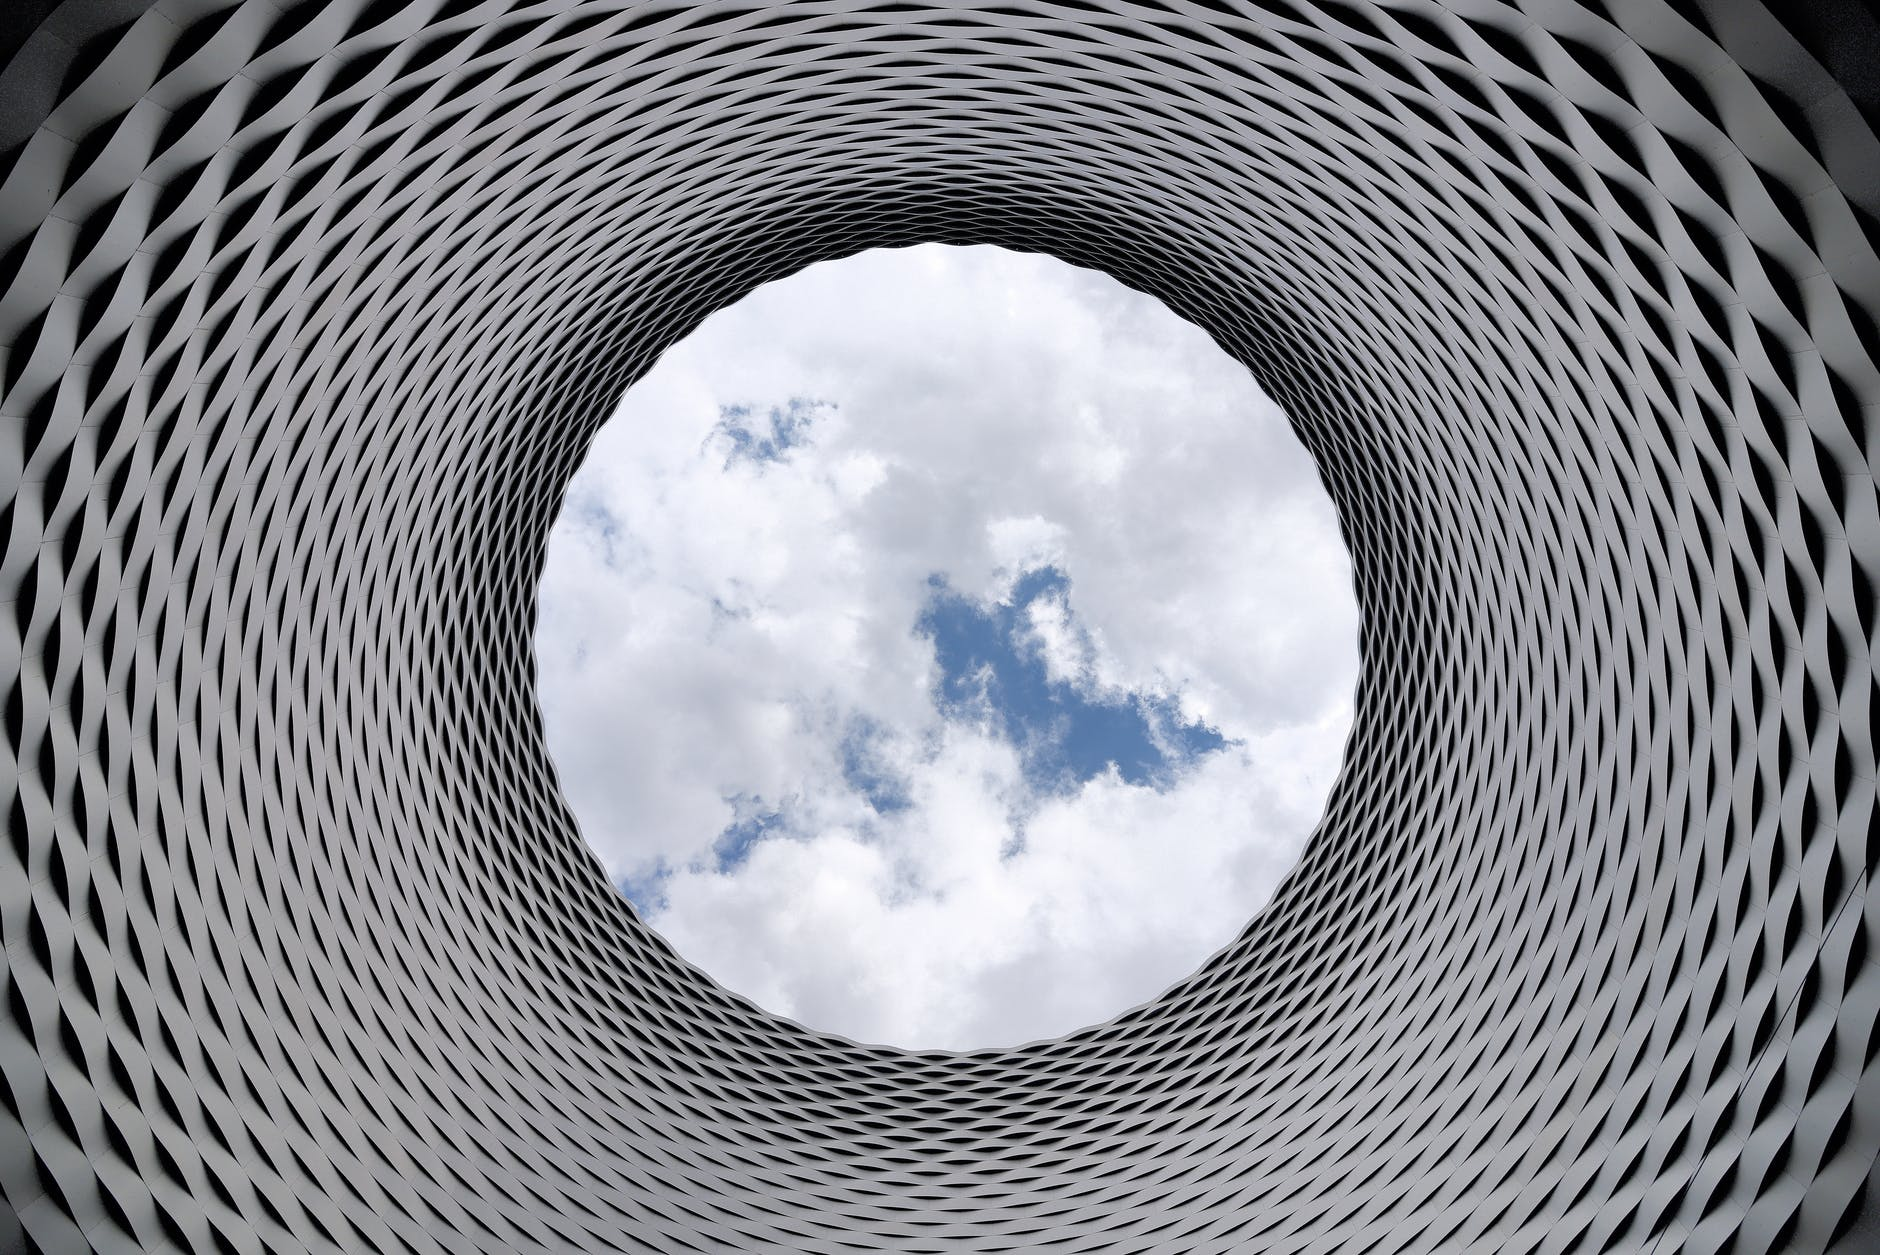 low angle photography of grey and black tunnel overlooking white cloudy and blue sky